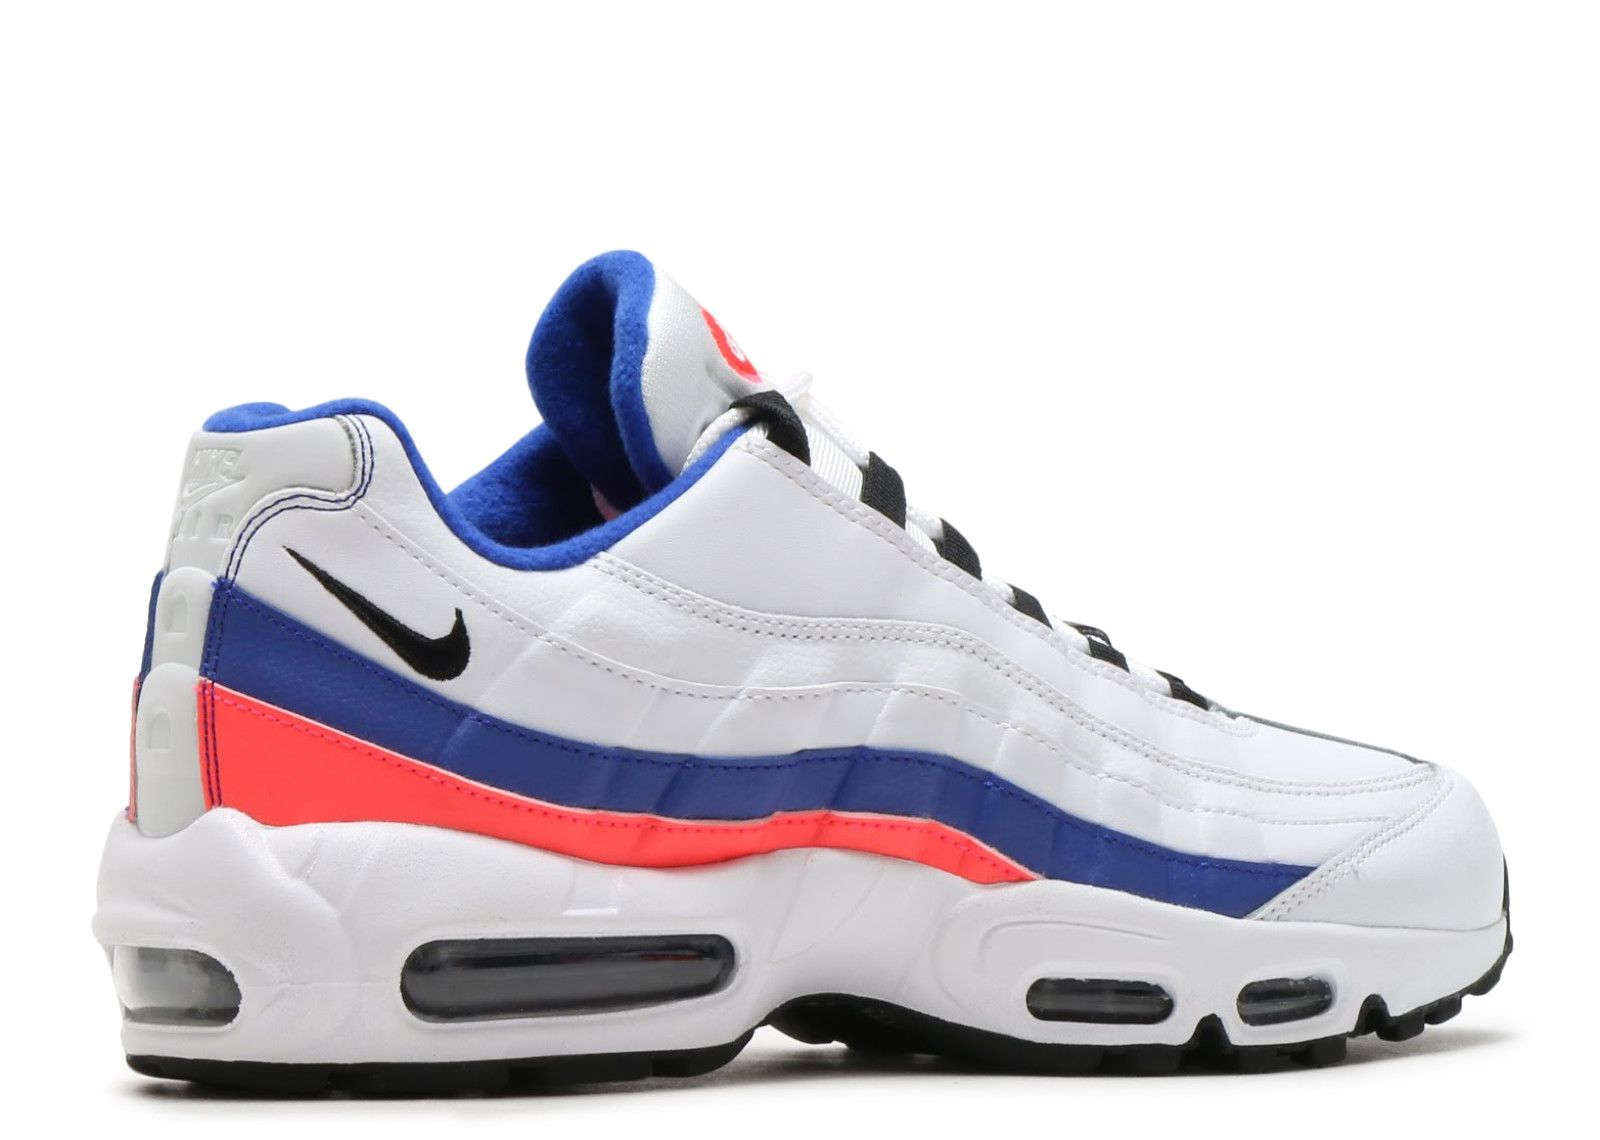 detailed look f387a 050d0 Sale Nike Air Max 95 Essential White Black Solar Red Ultramarine Trainers  UK Cheap Online